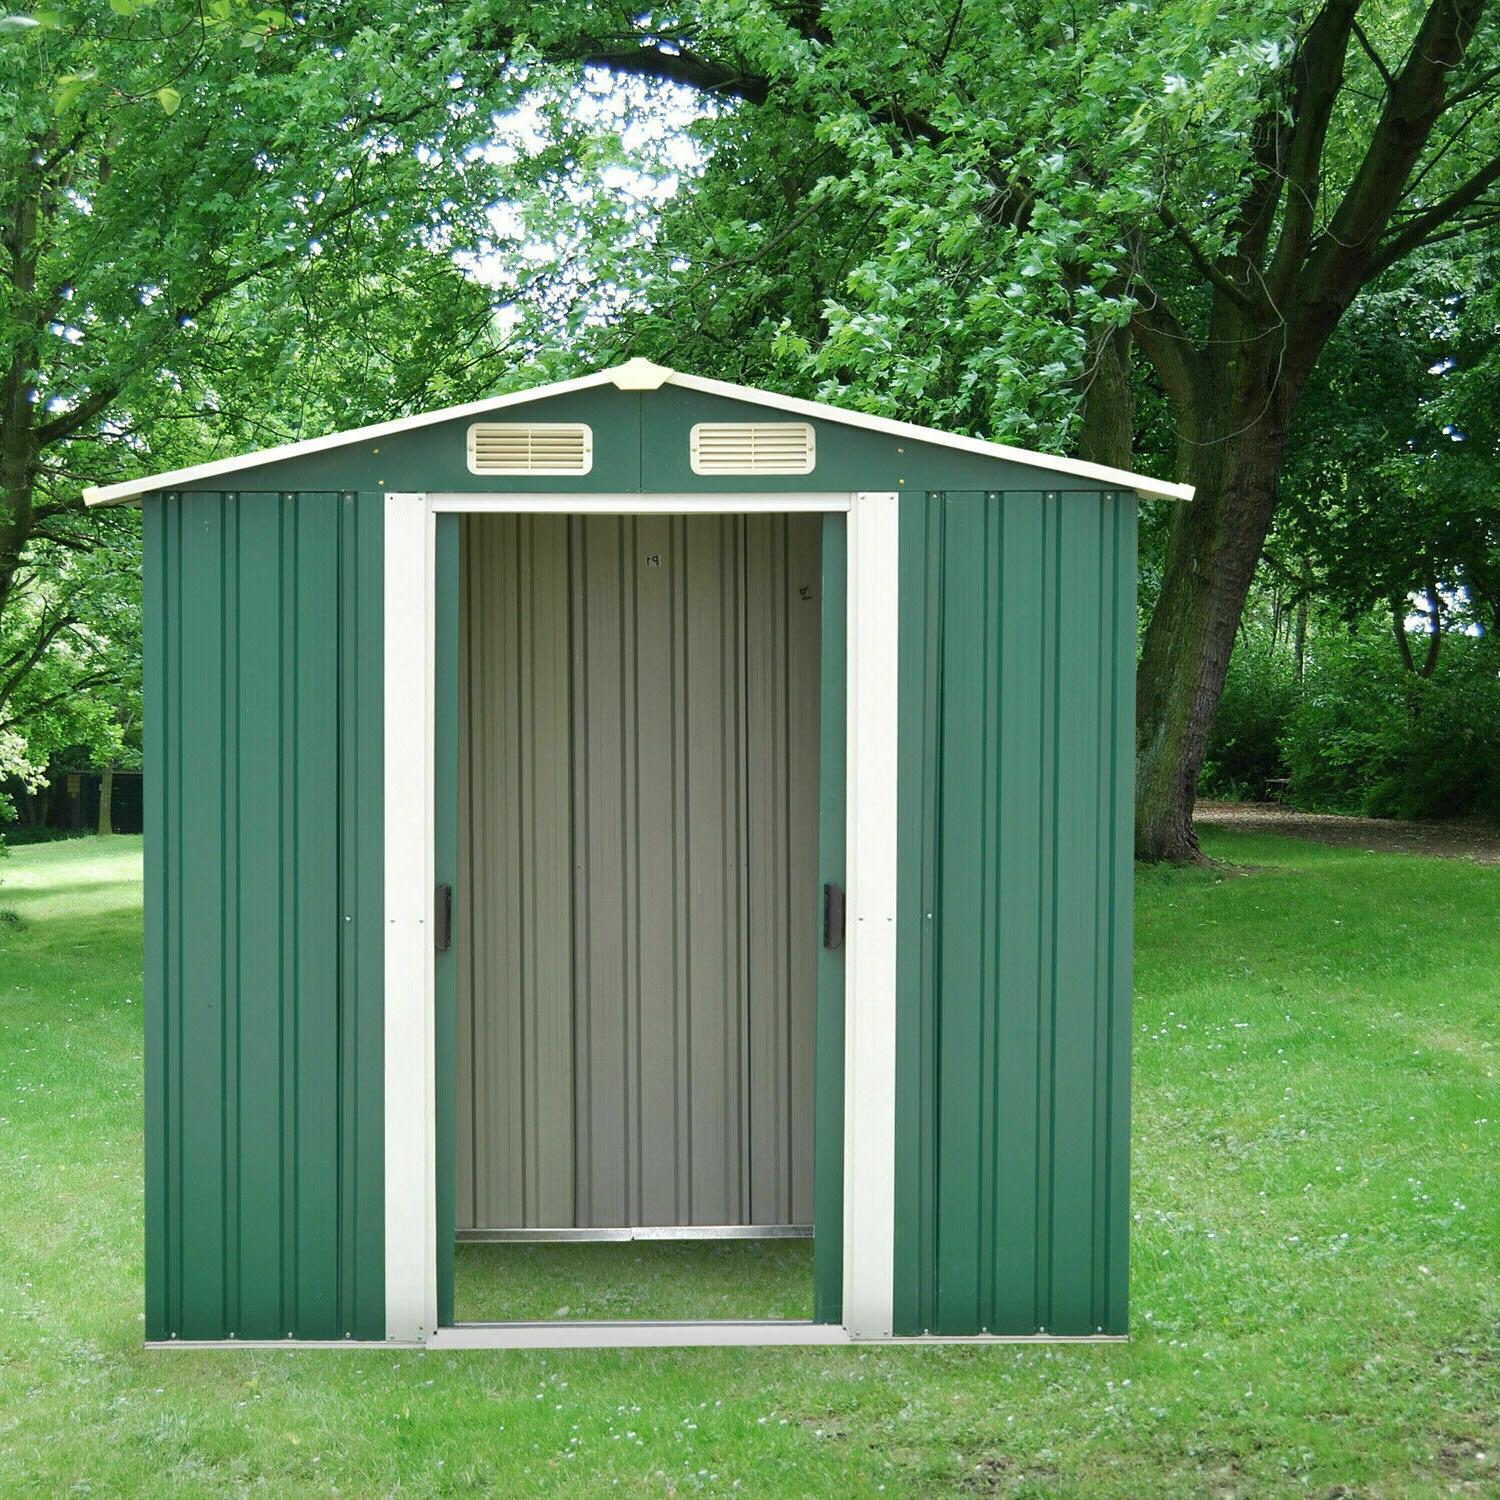 6'x4' Outdoor Shed Utility House